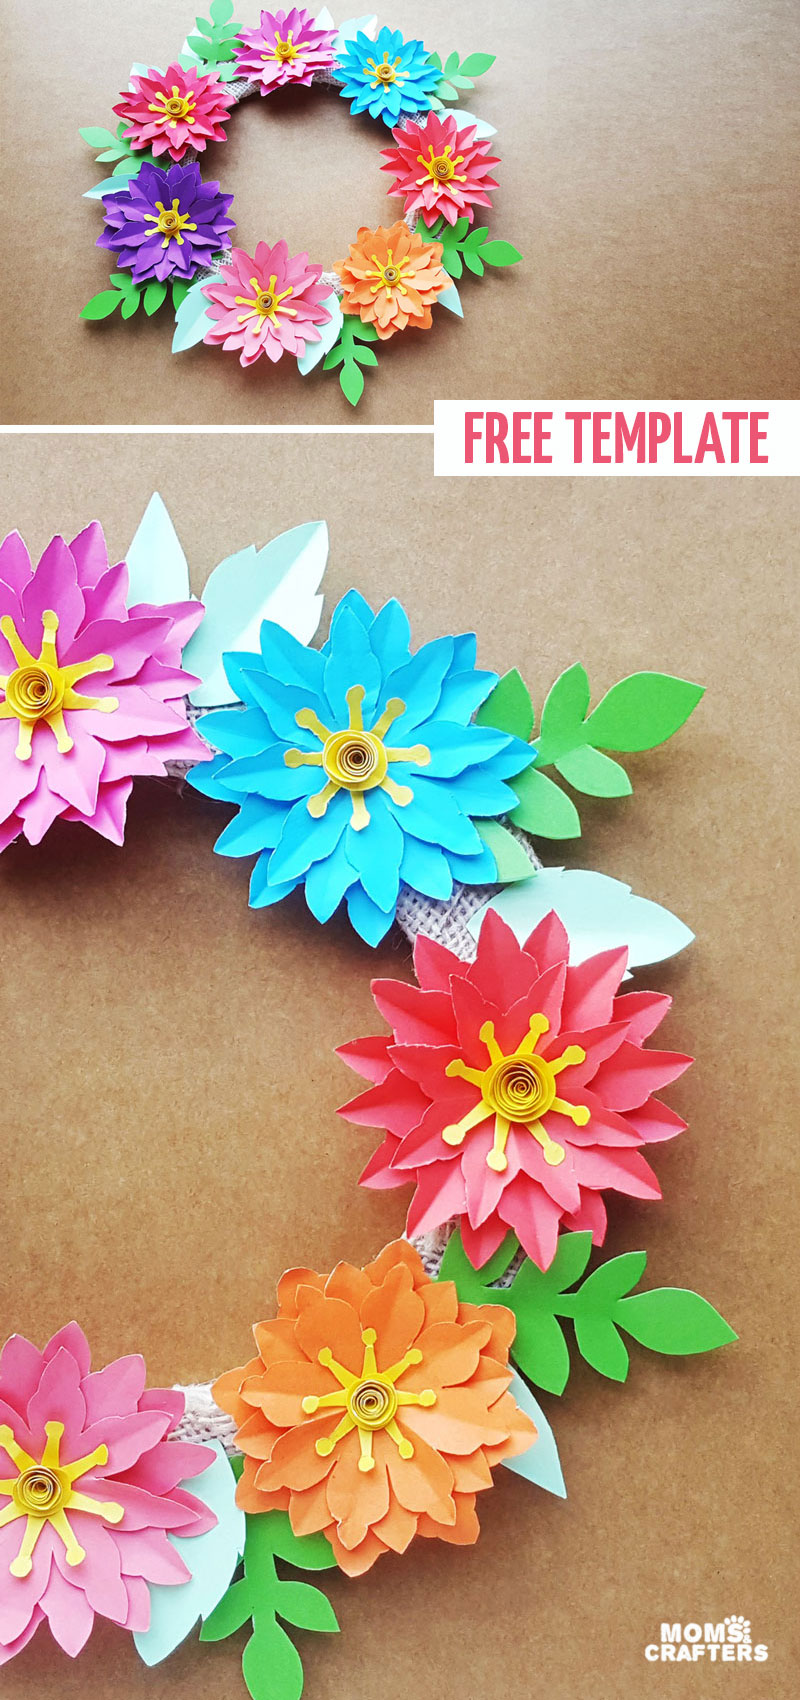 Click for a beautiful paper flower wreath tutorial and free printable templates for this fun Spring home decor project for teens